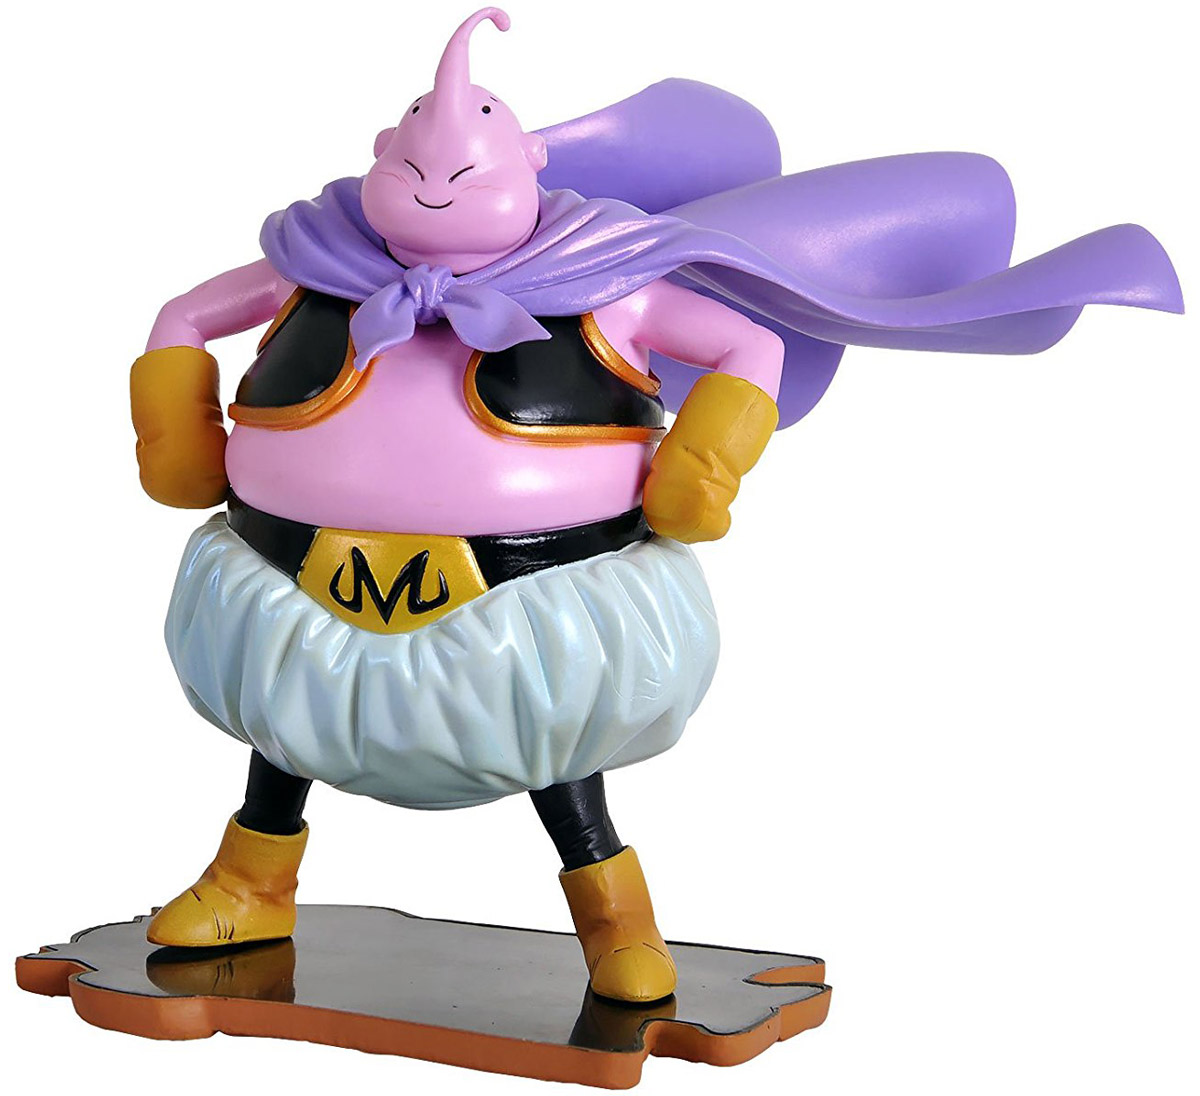 Bandai Фигурка Dragon Ball Z Pastel Color ver. Majin Boo bandai фигурка dragon ball z pastel color ver majin boo